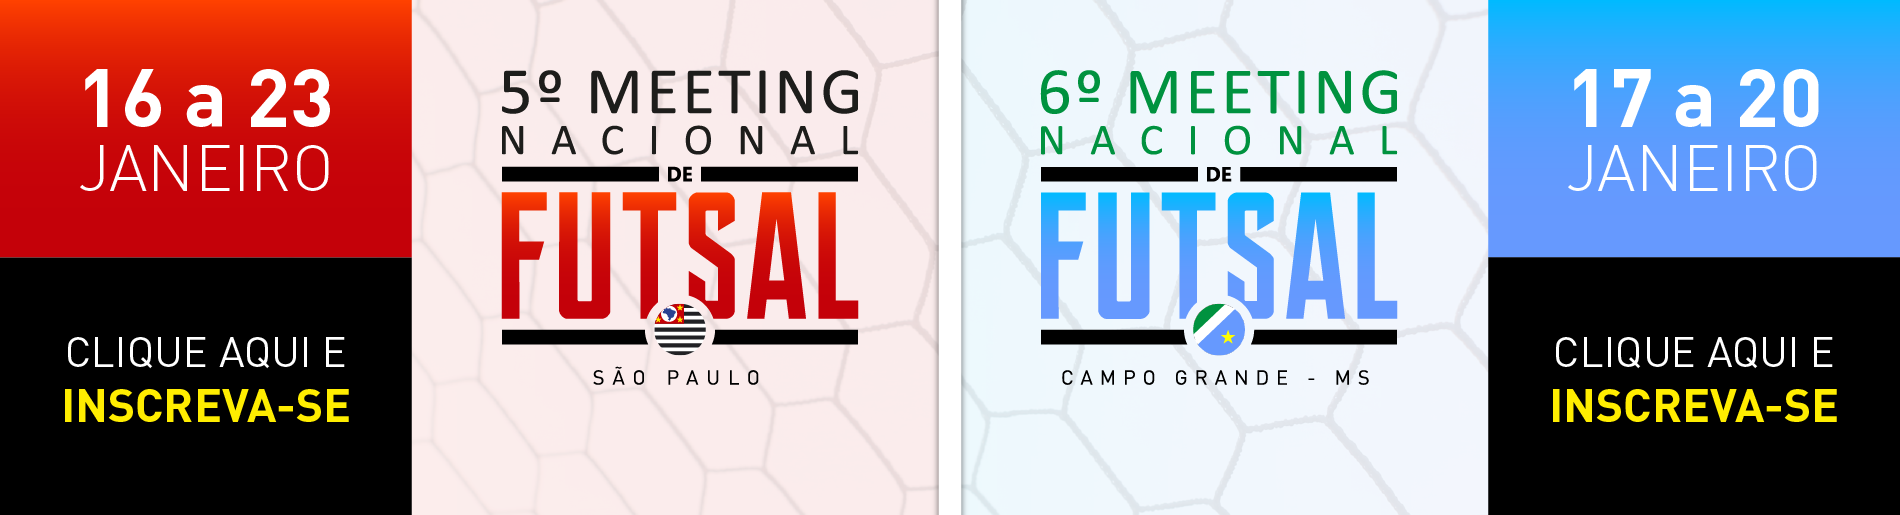 5º e 6º meetings nacionisl de futsal - sp/ms